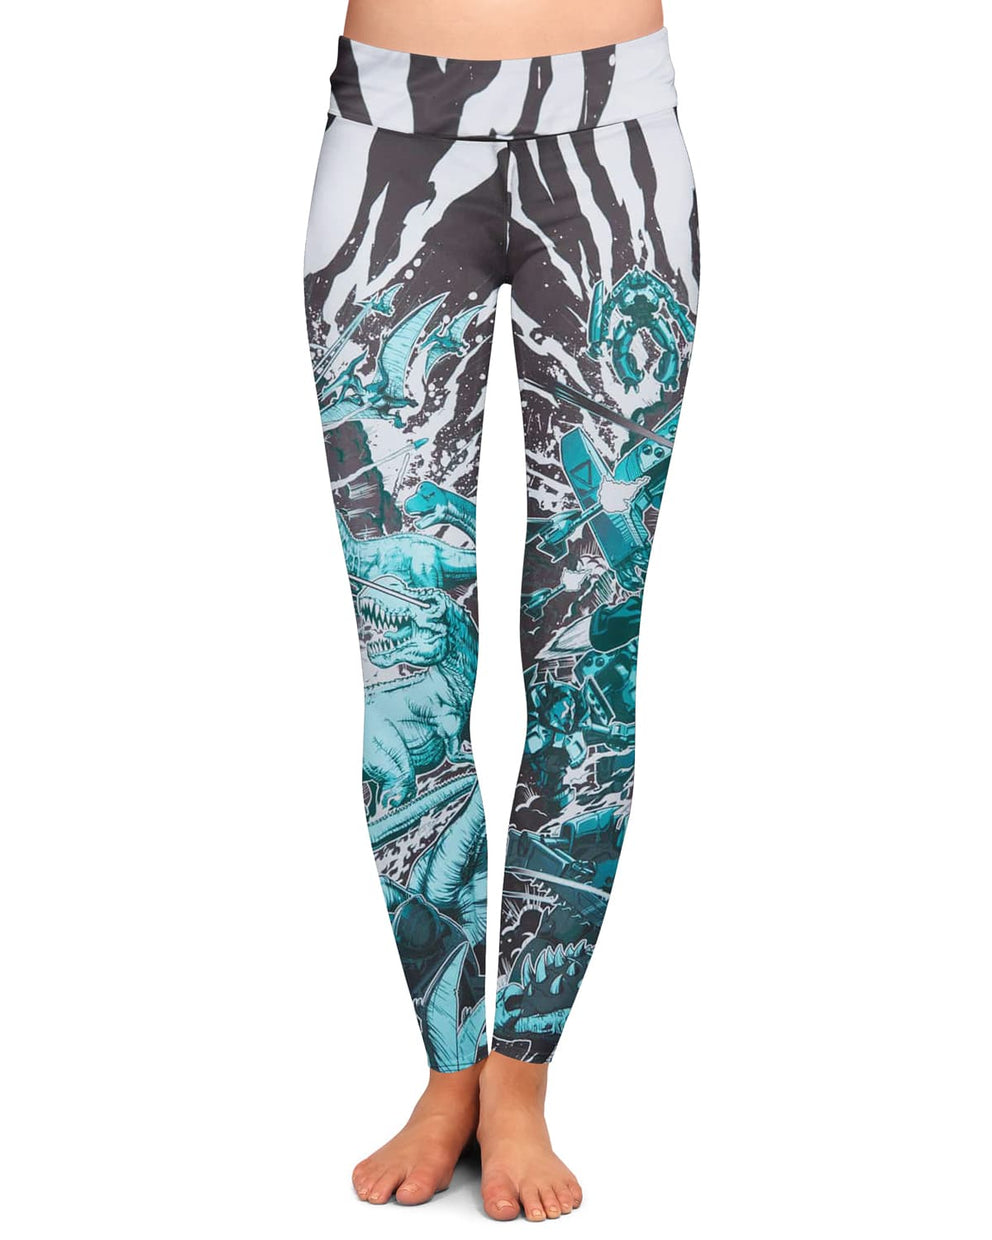 Excision 'Dino vs. Robot' Leggings - Teal